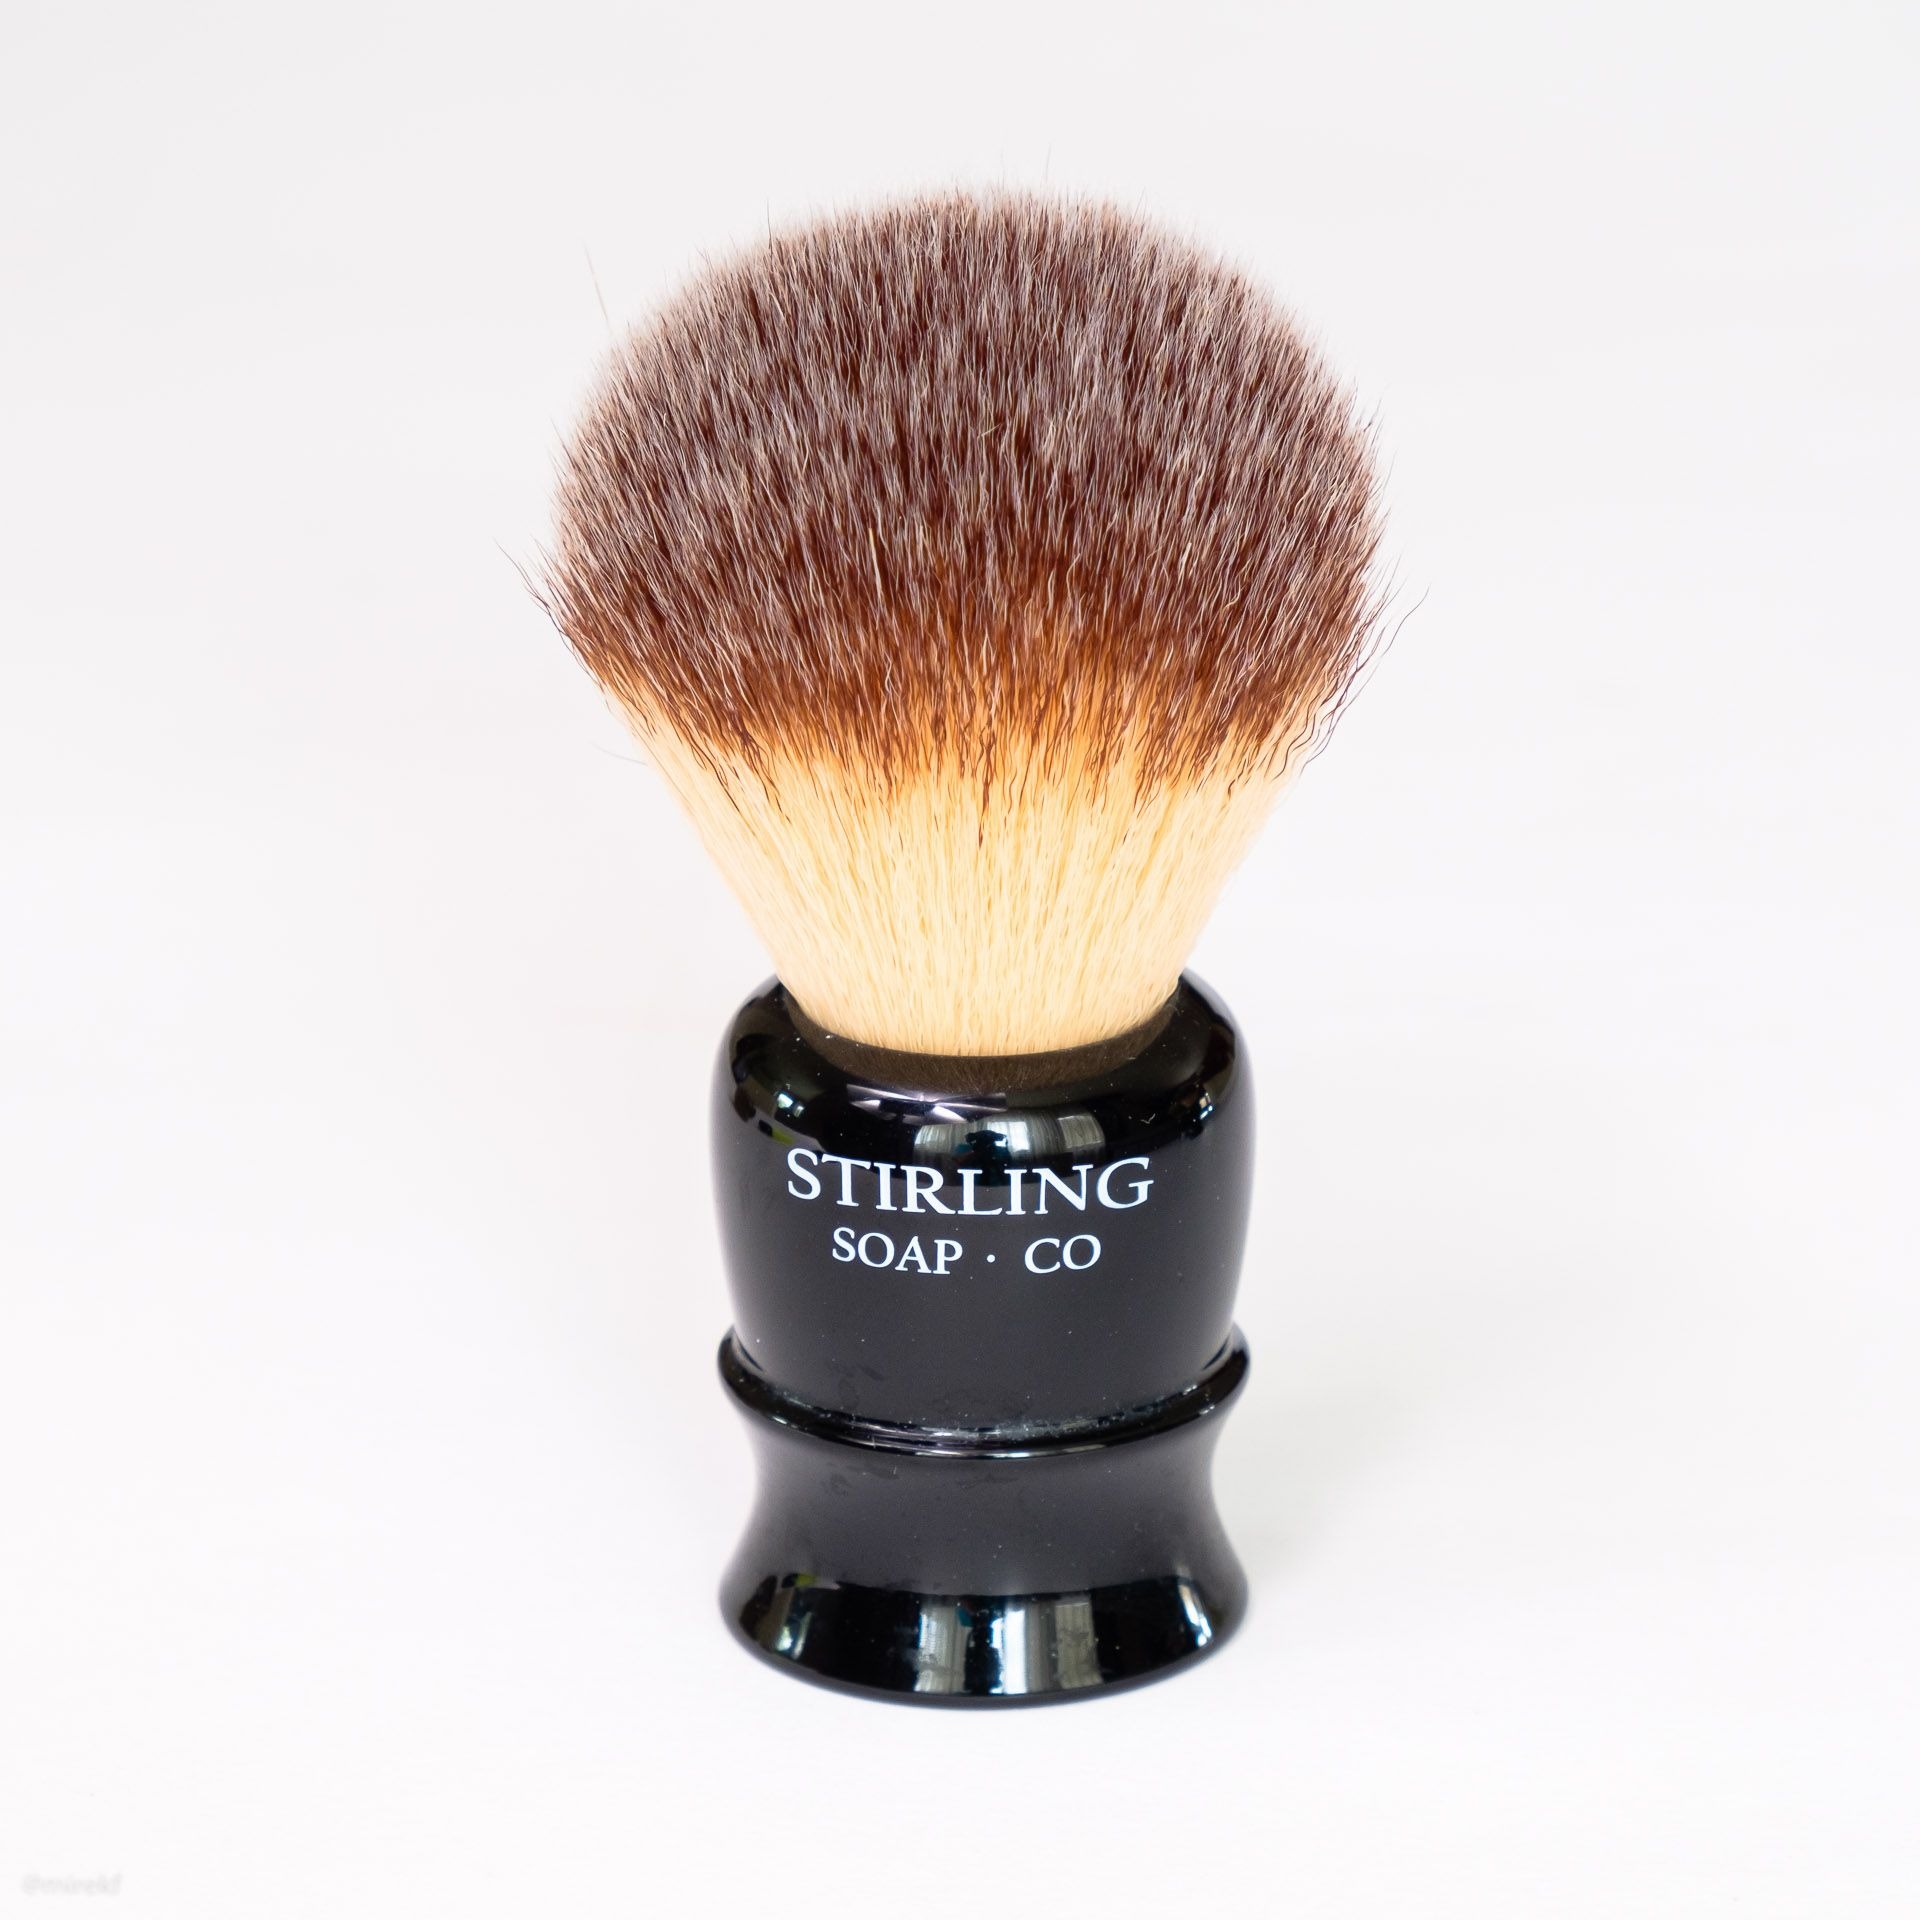 Syntetyczny pędzel do golenia Stirling Synthetic Shave Brush 22 mm (Li'l Brudder)